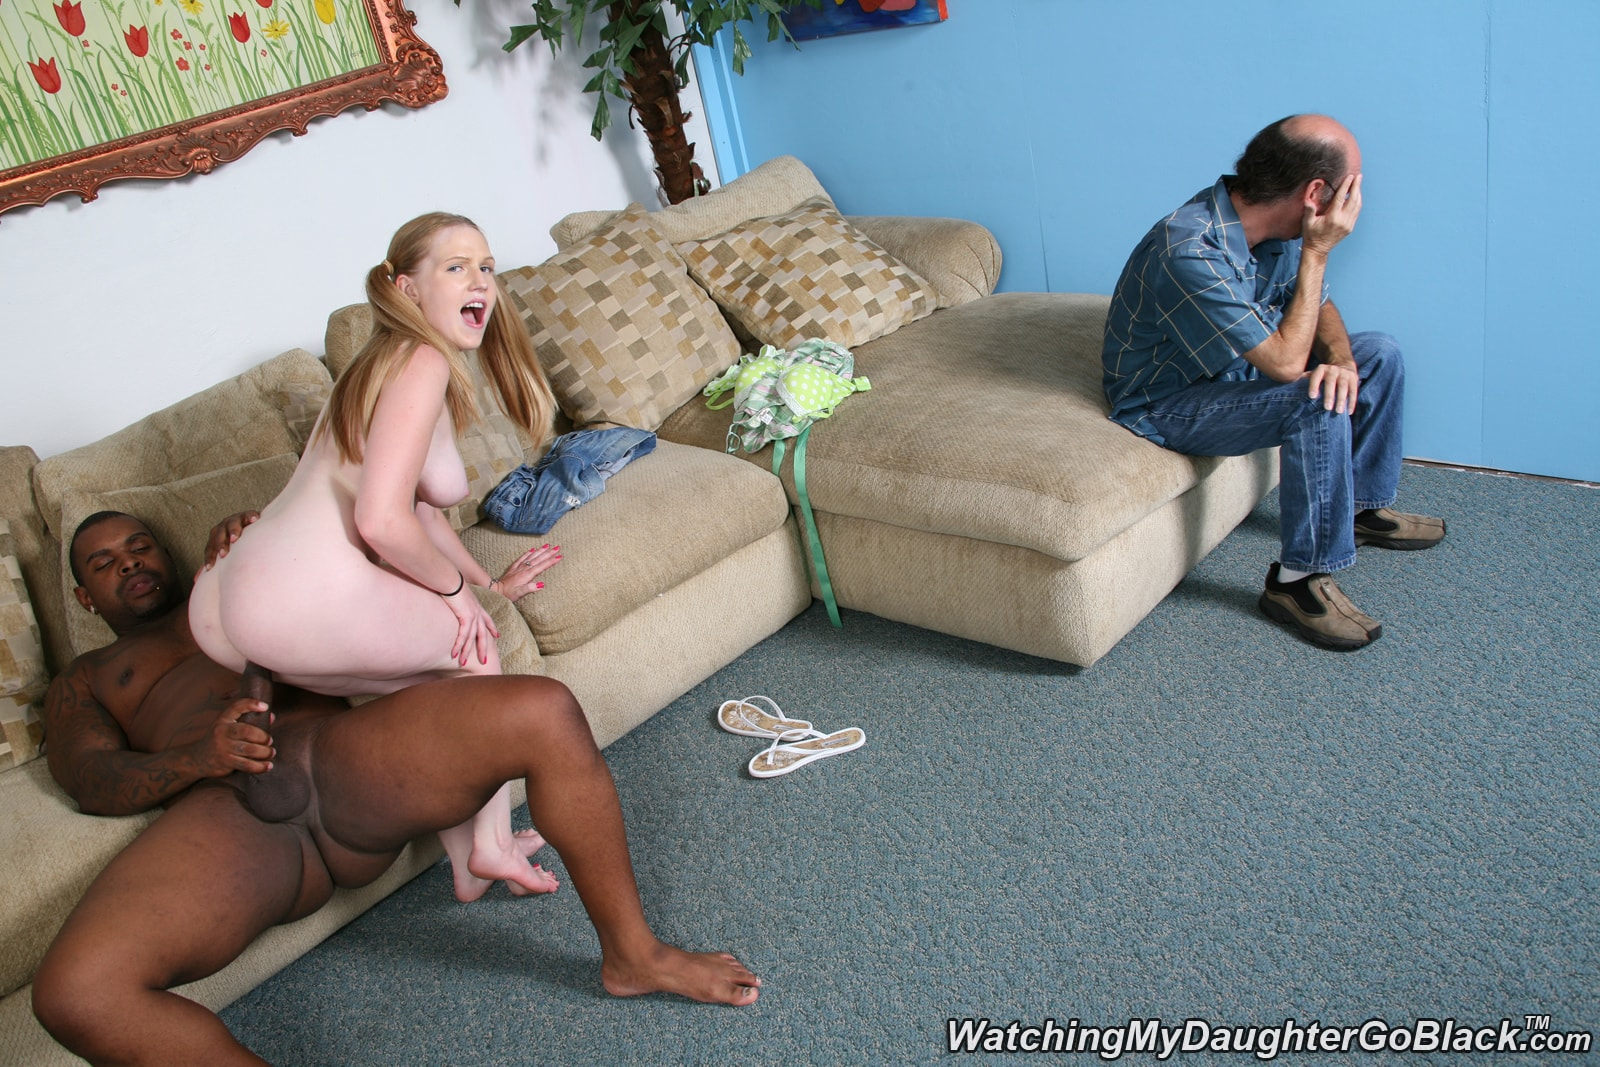 Dogfart 'Laci Laine - Watching My Daughter Go Black' starring Laci Laine (photo 27)